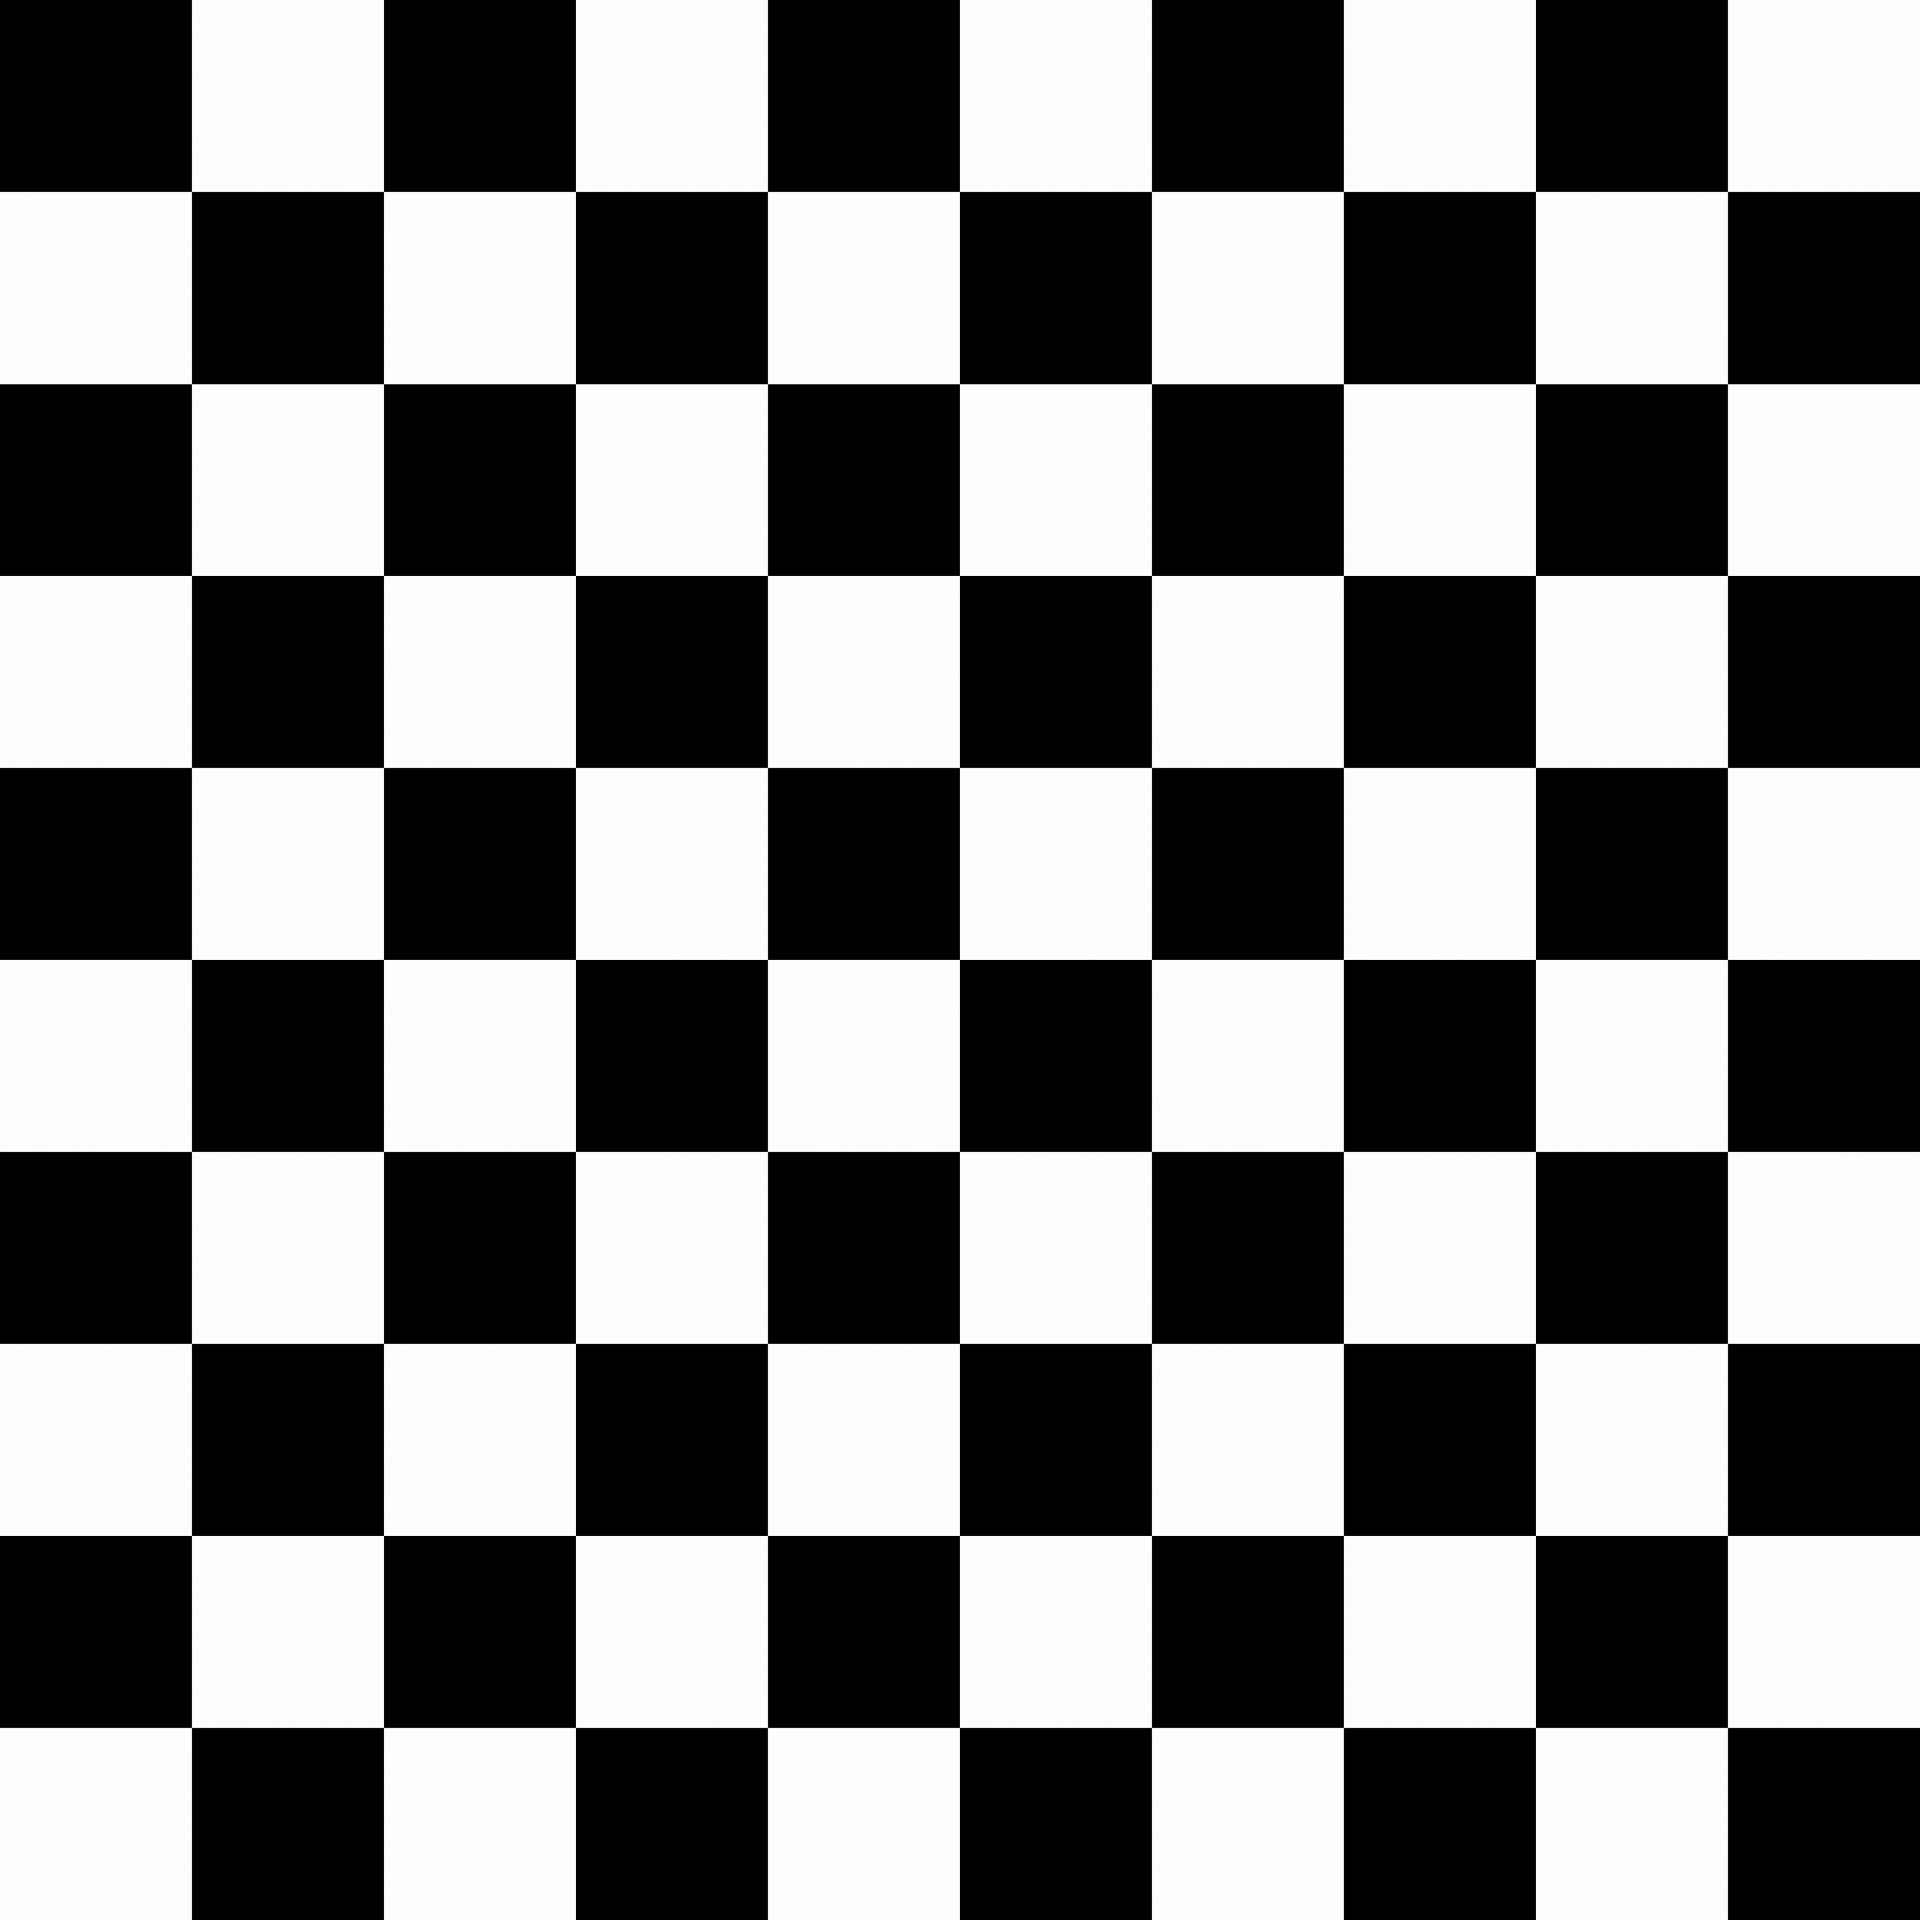 Pictures Of A Checker Board Elegant Checkerboard Squares Black White Free Stock Public